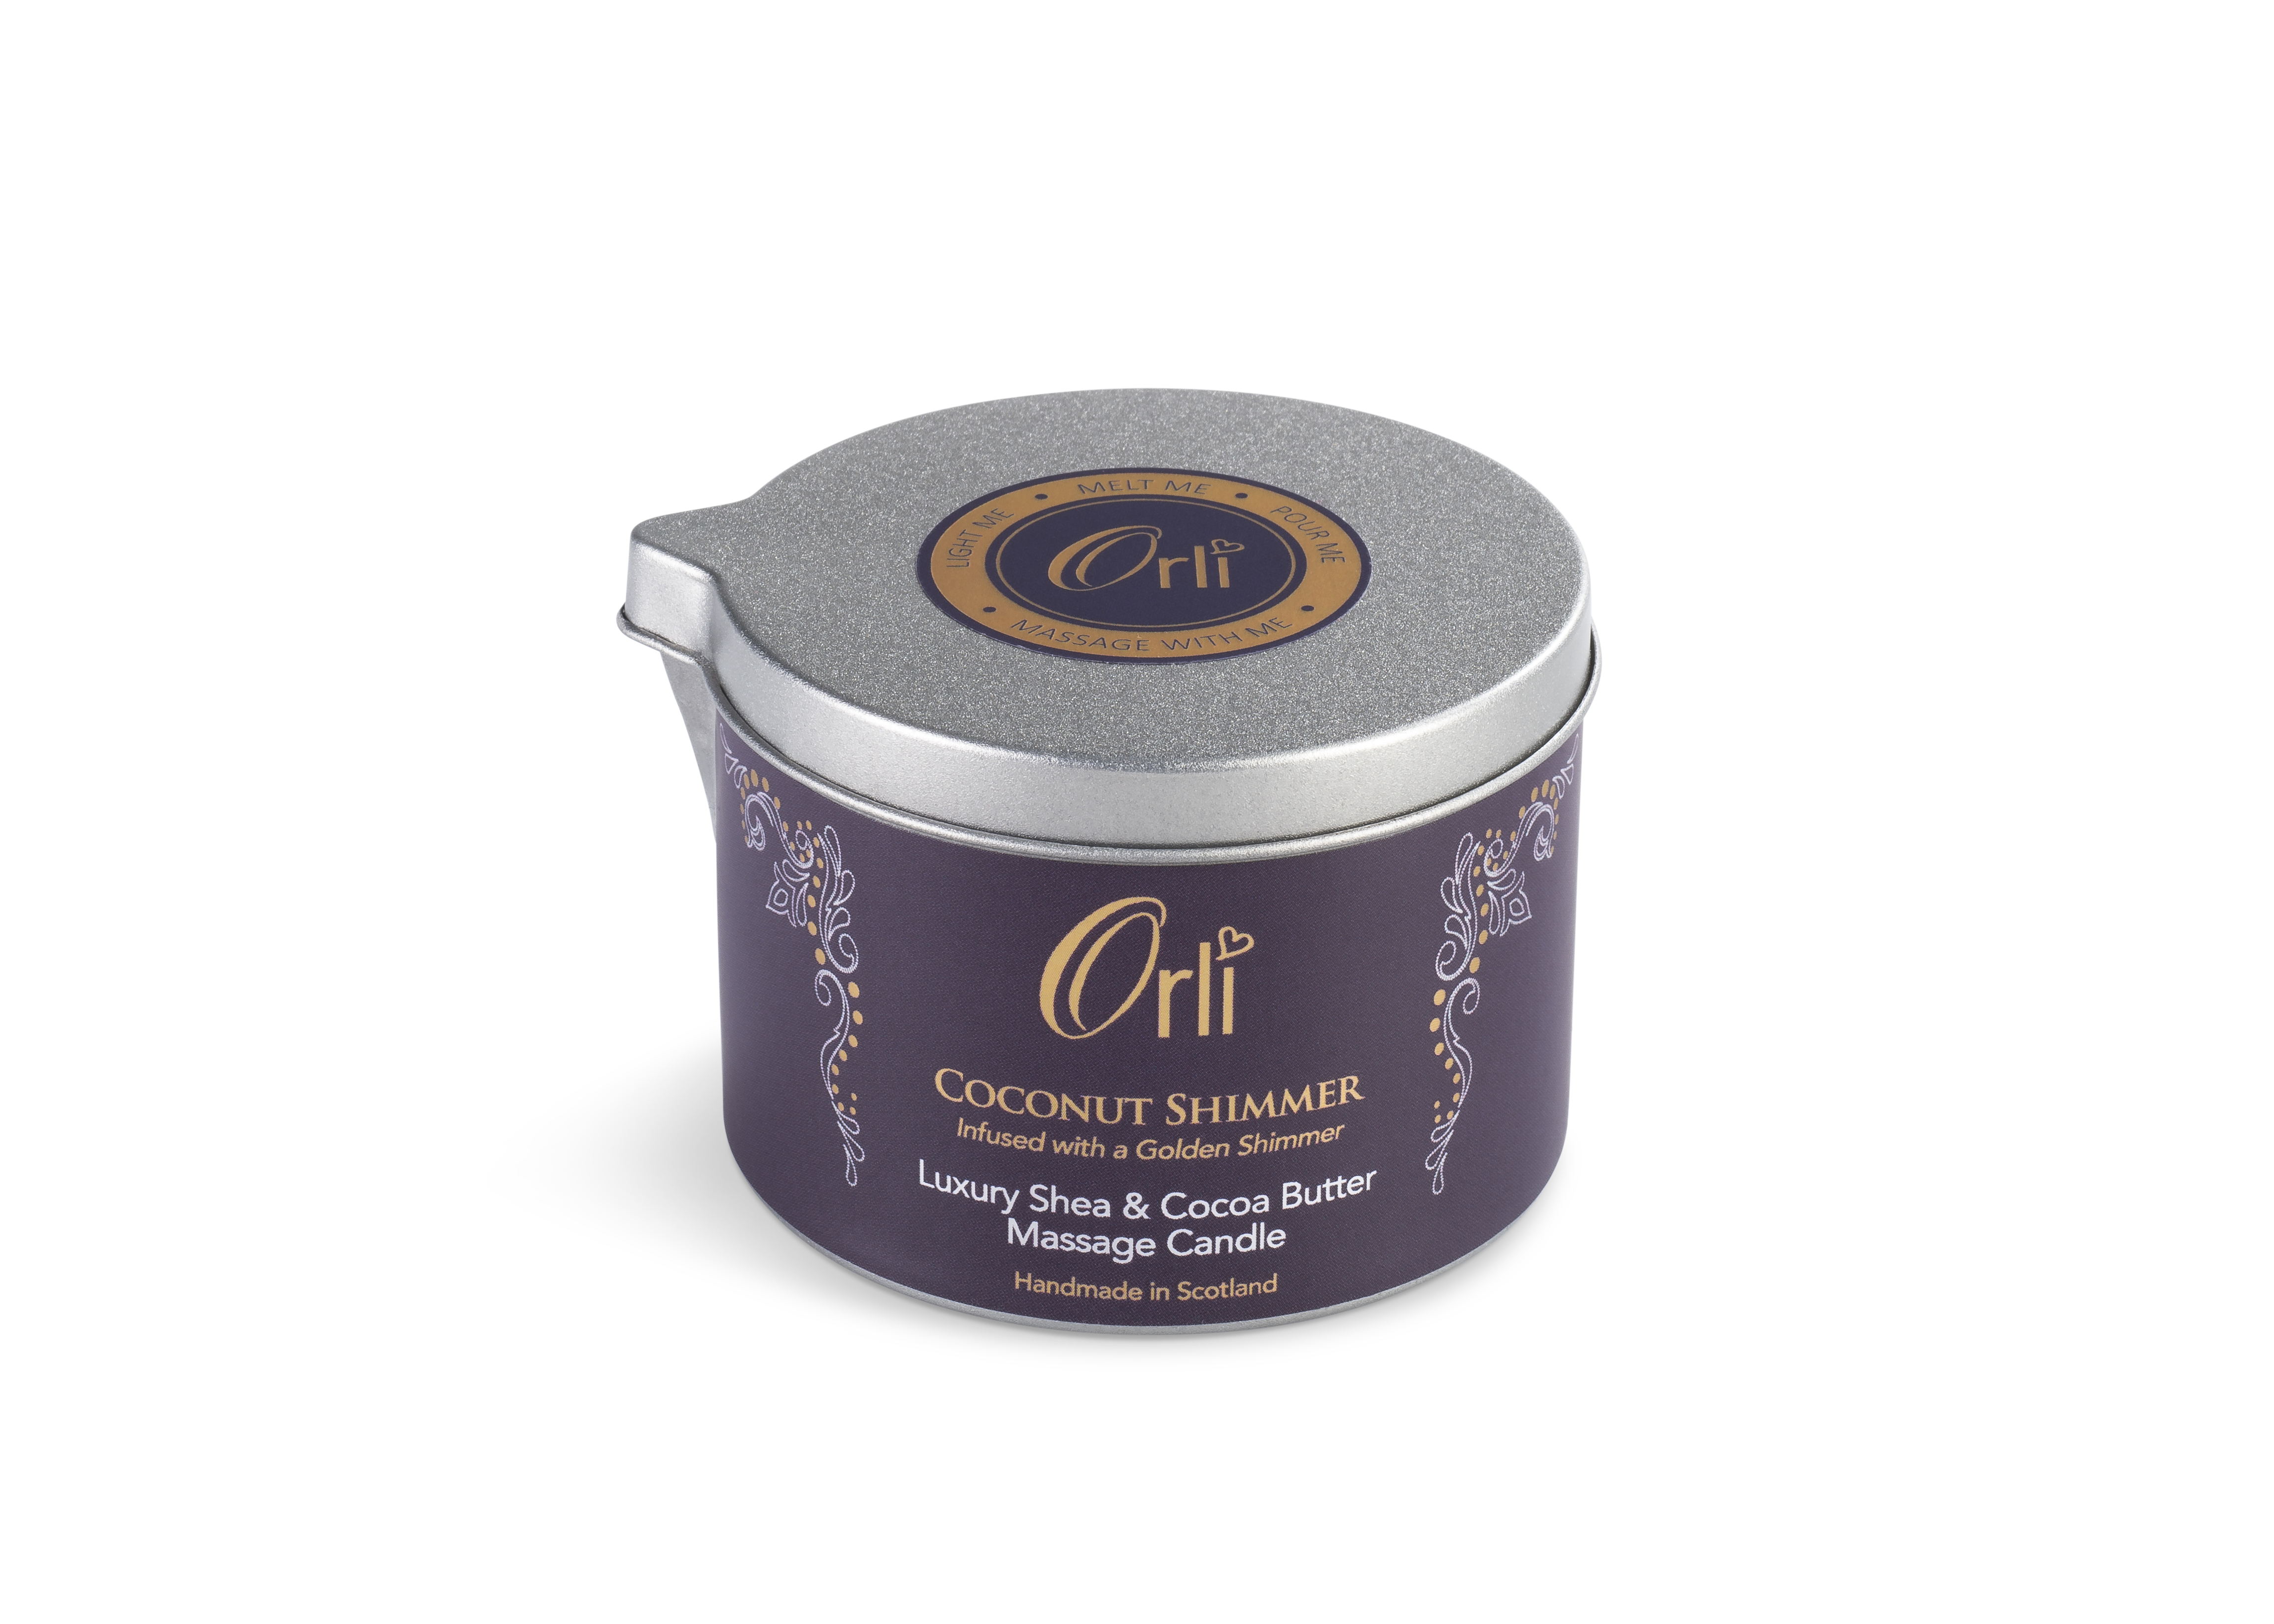 Coconut Shimmer Massage Candle by Orli